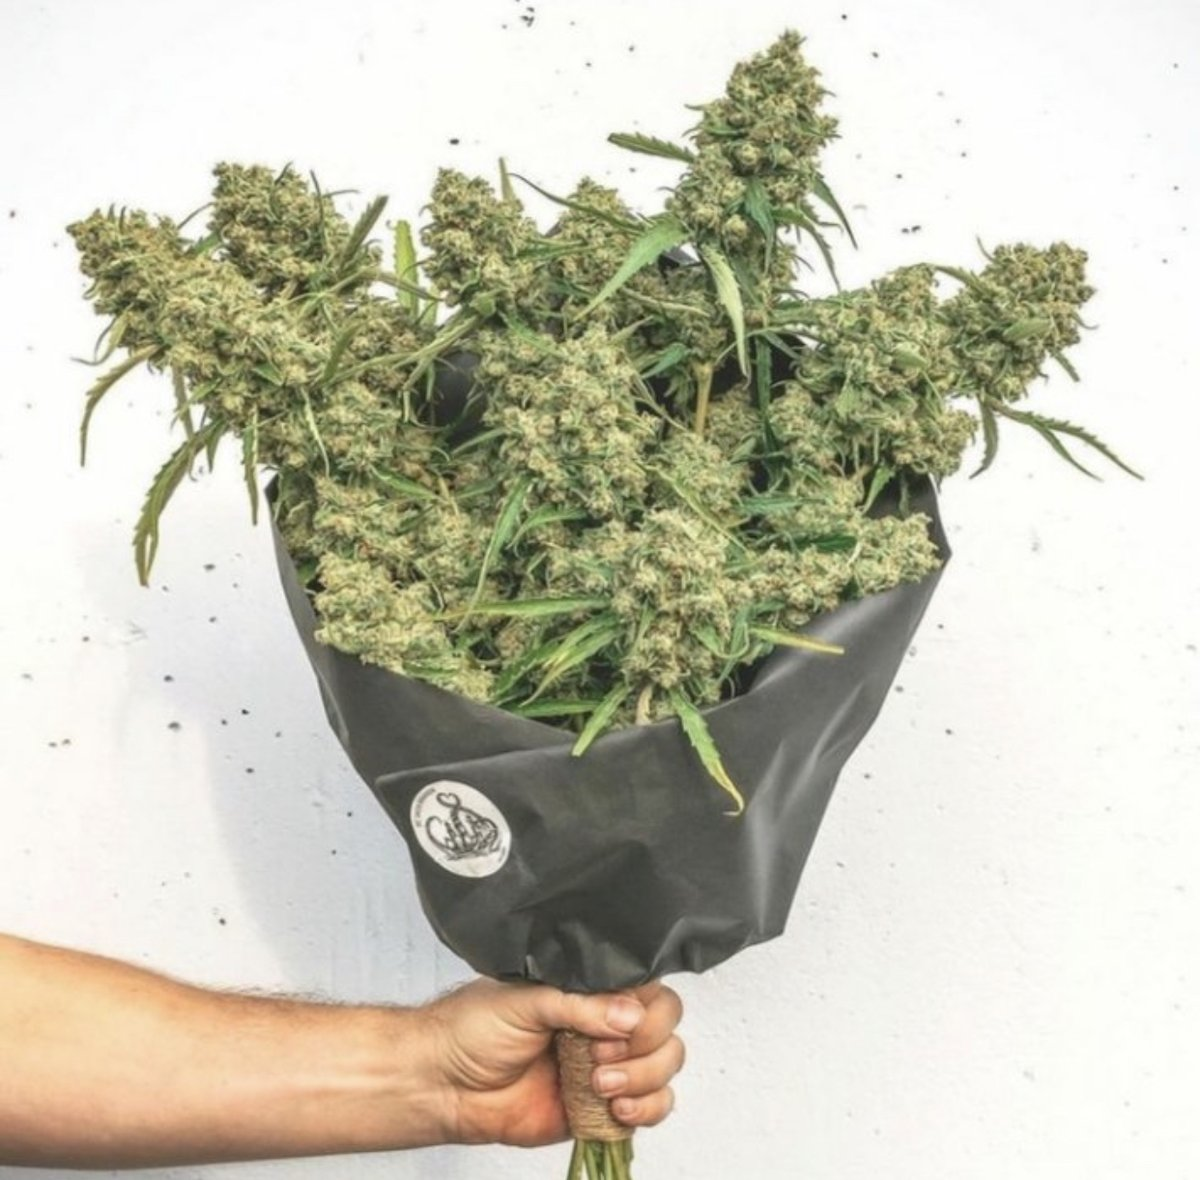 TheSalesJoint: Our growers are all about bringing you flower!  Learn more about the premier sales connection for dispensaries & cultivators by visiting us on-line at The Sales Joint!  Stay Lit. 🔥   #thesalesjoint #cannabisindustry